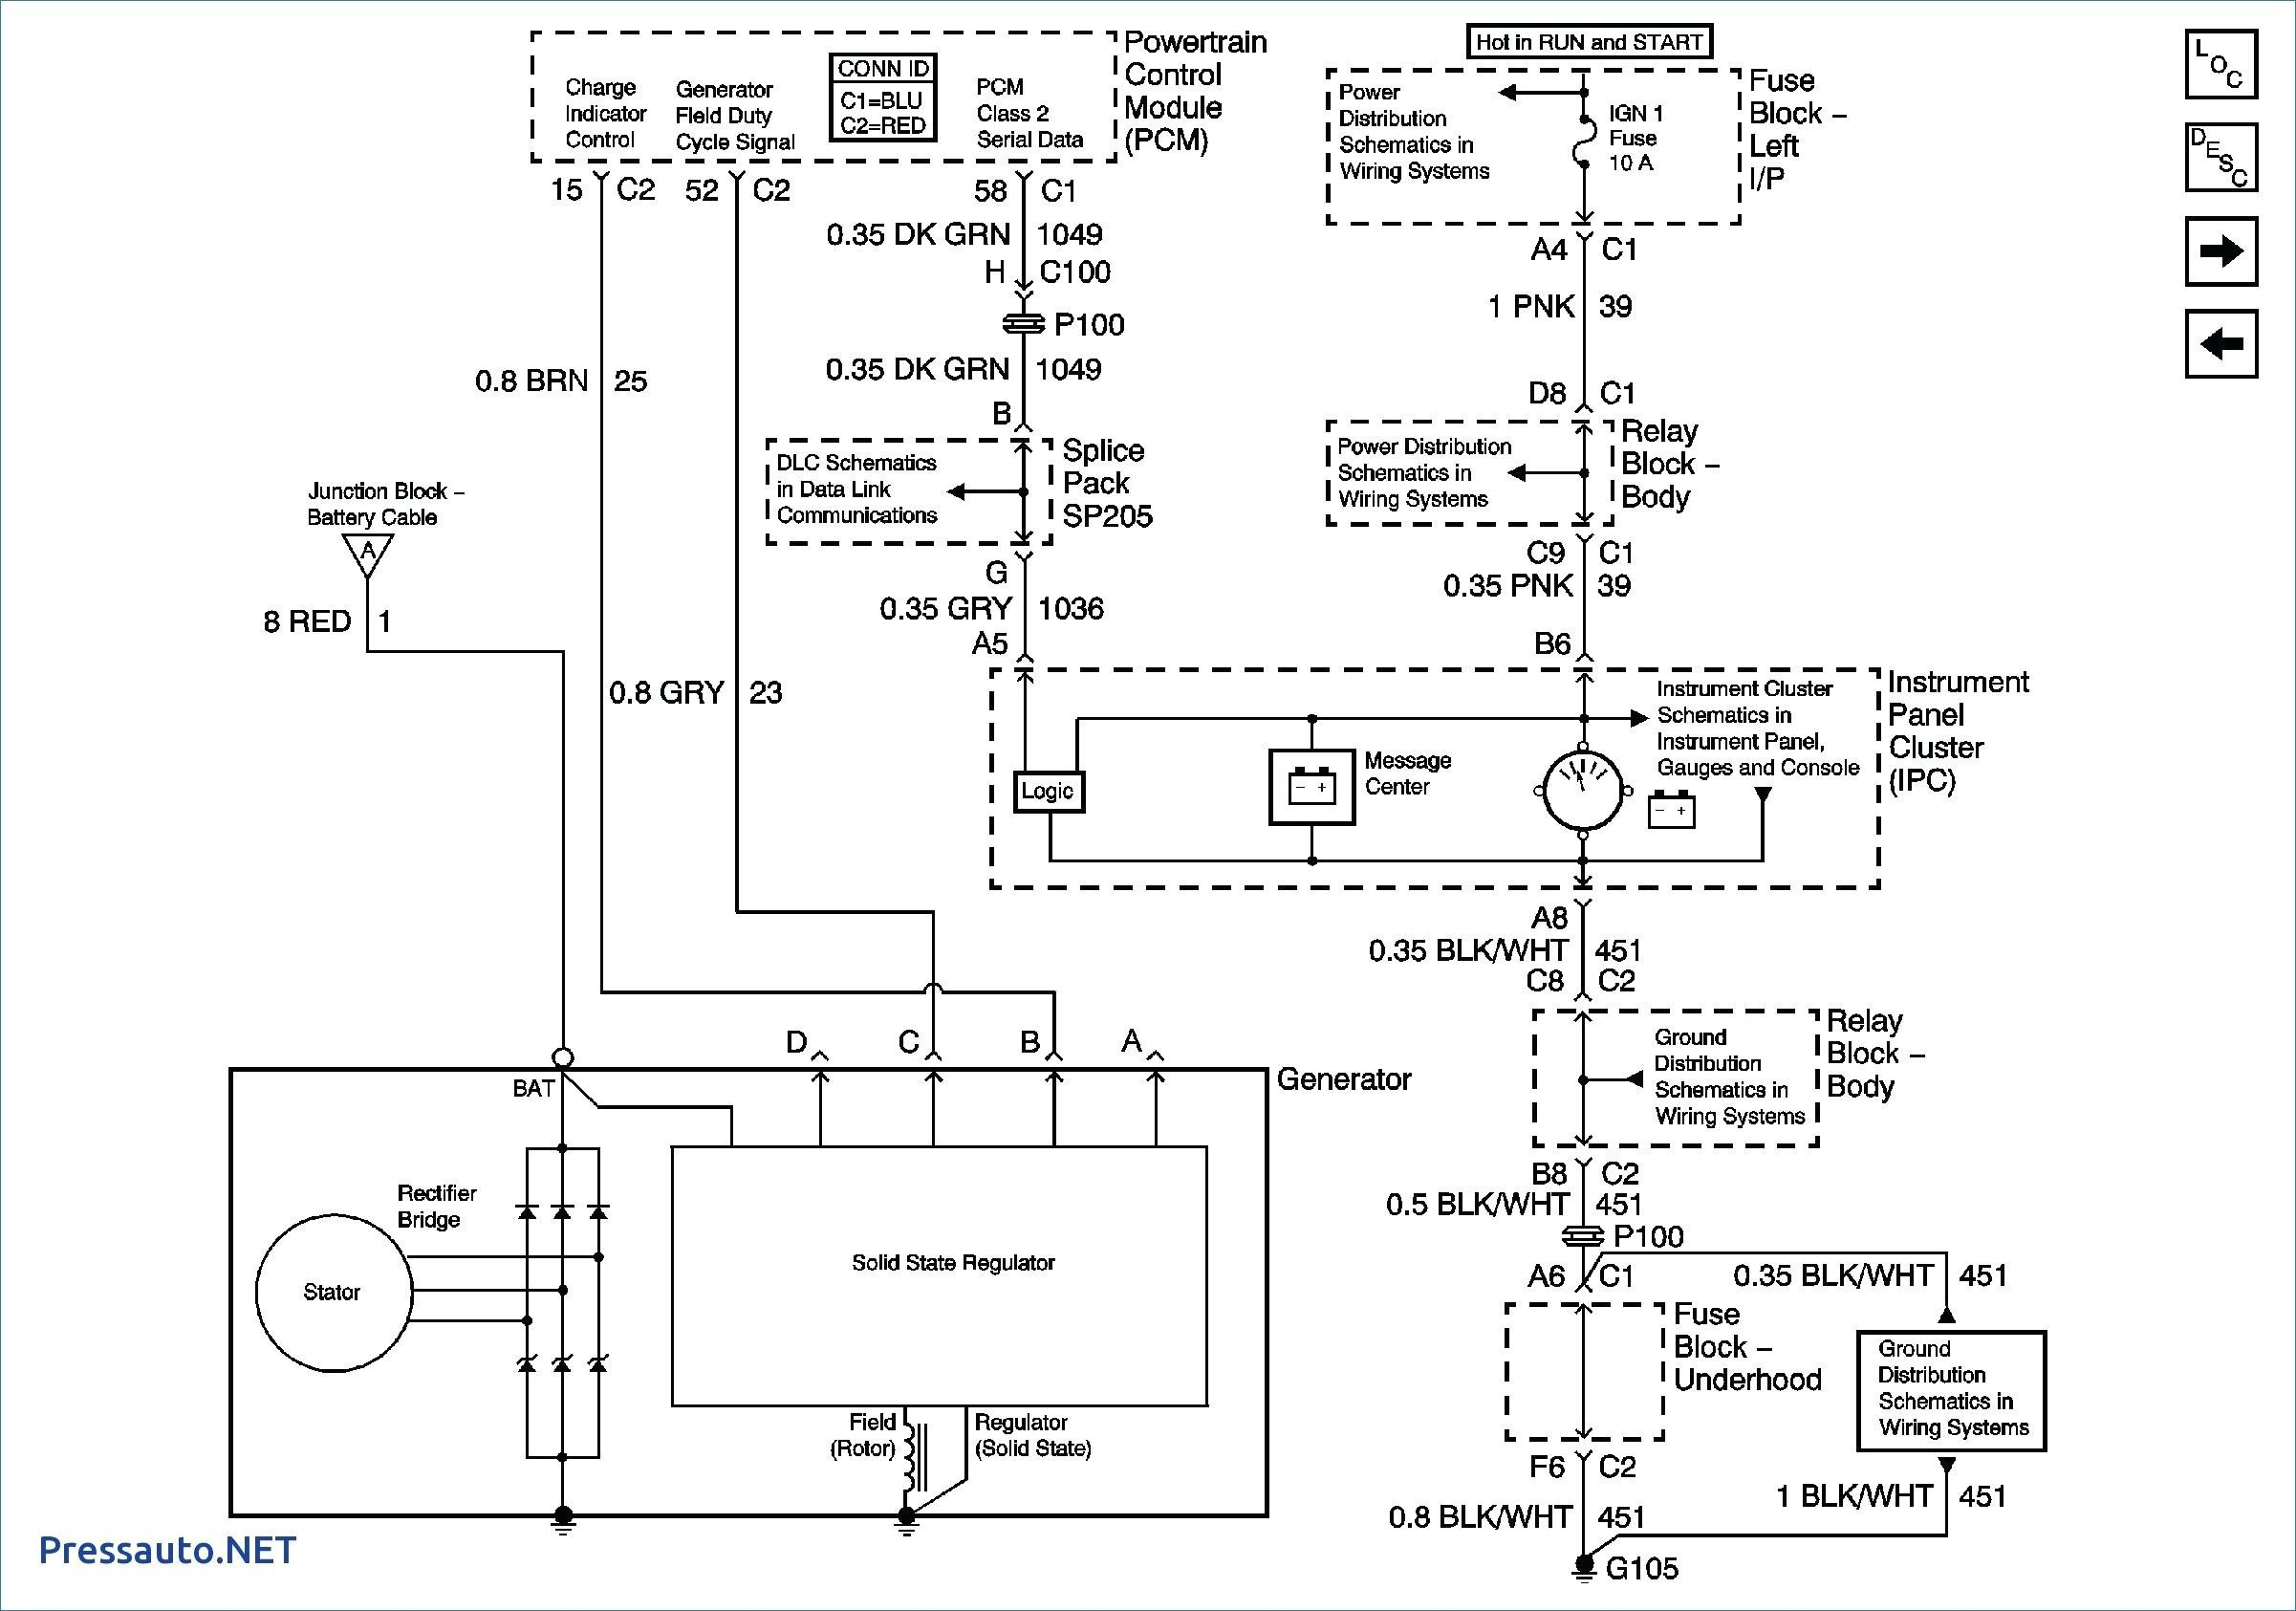 arco 60109 alternator wiring diagram 60075 arco alternator wiring diagram ford alternator wiring diagram internal regulator | free wiring diagram